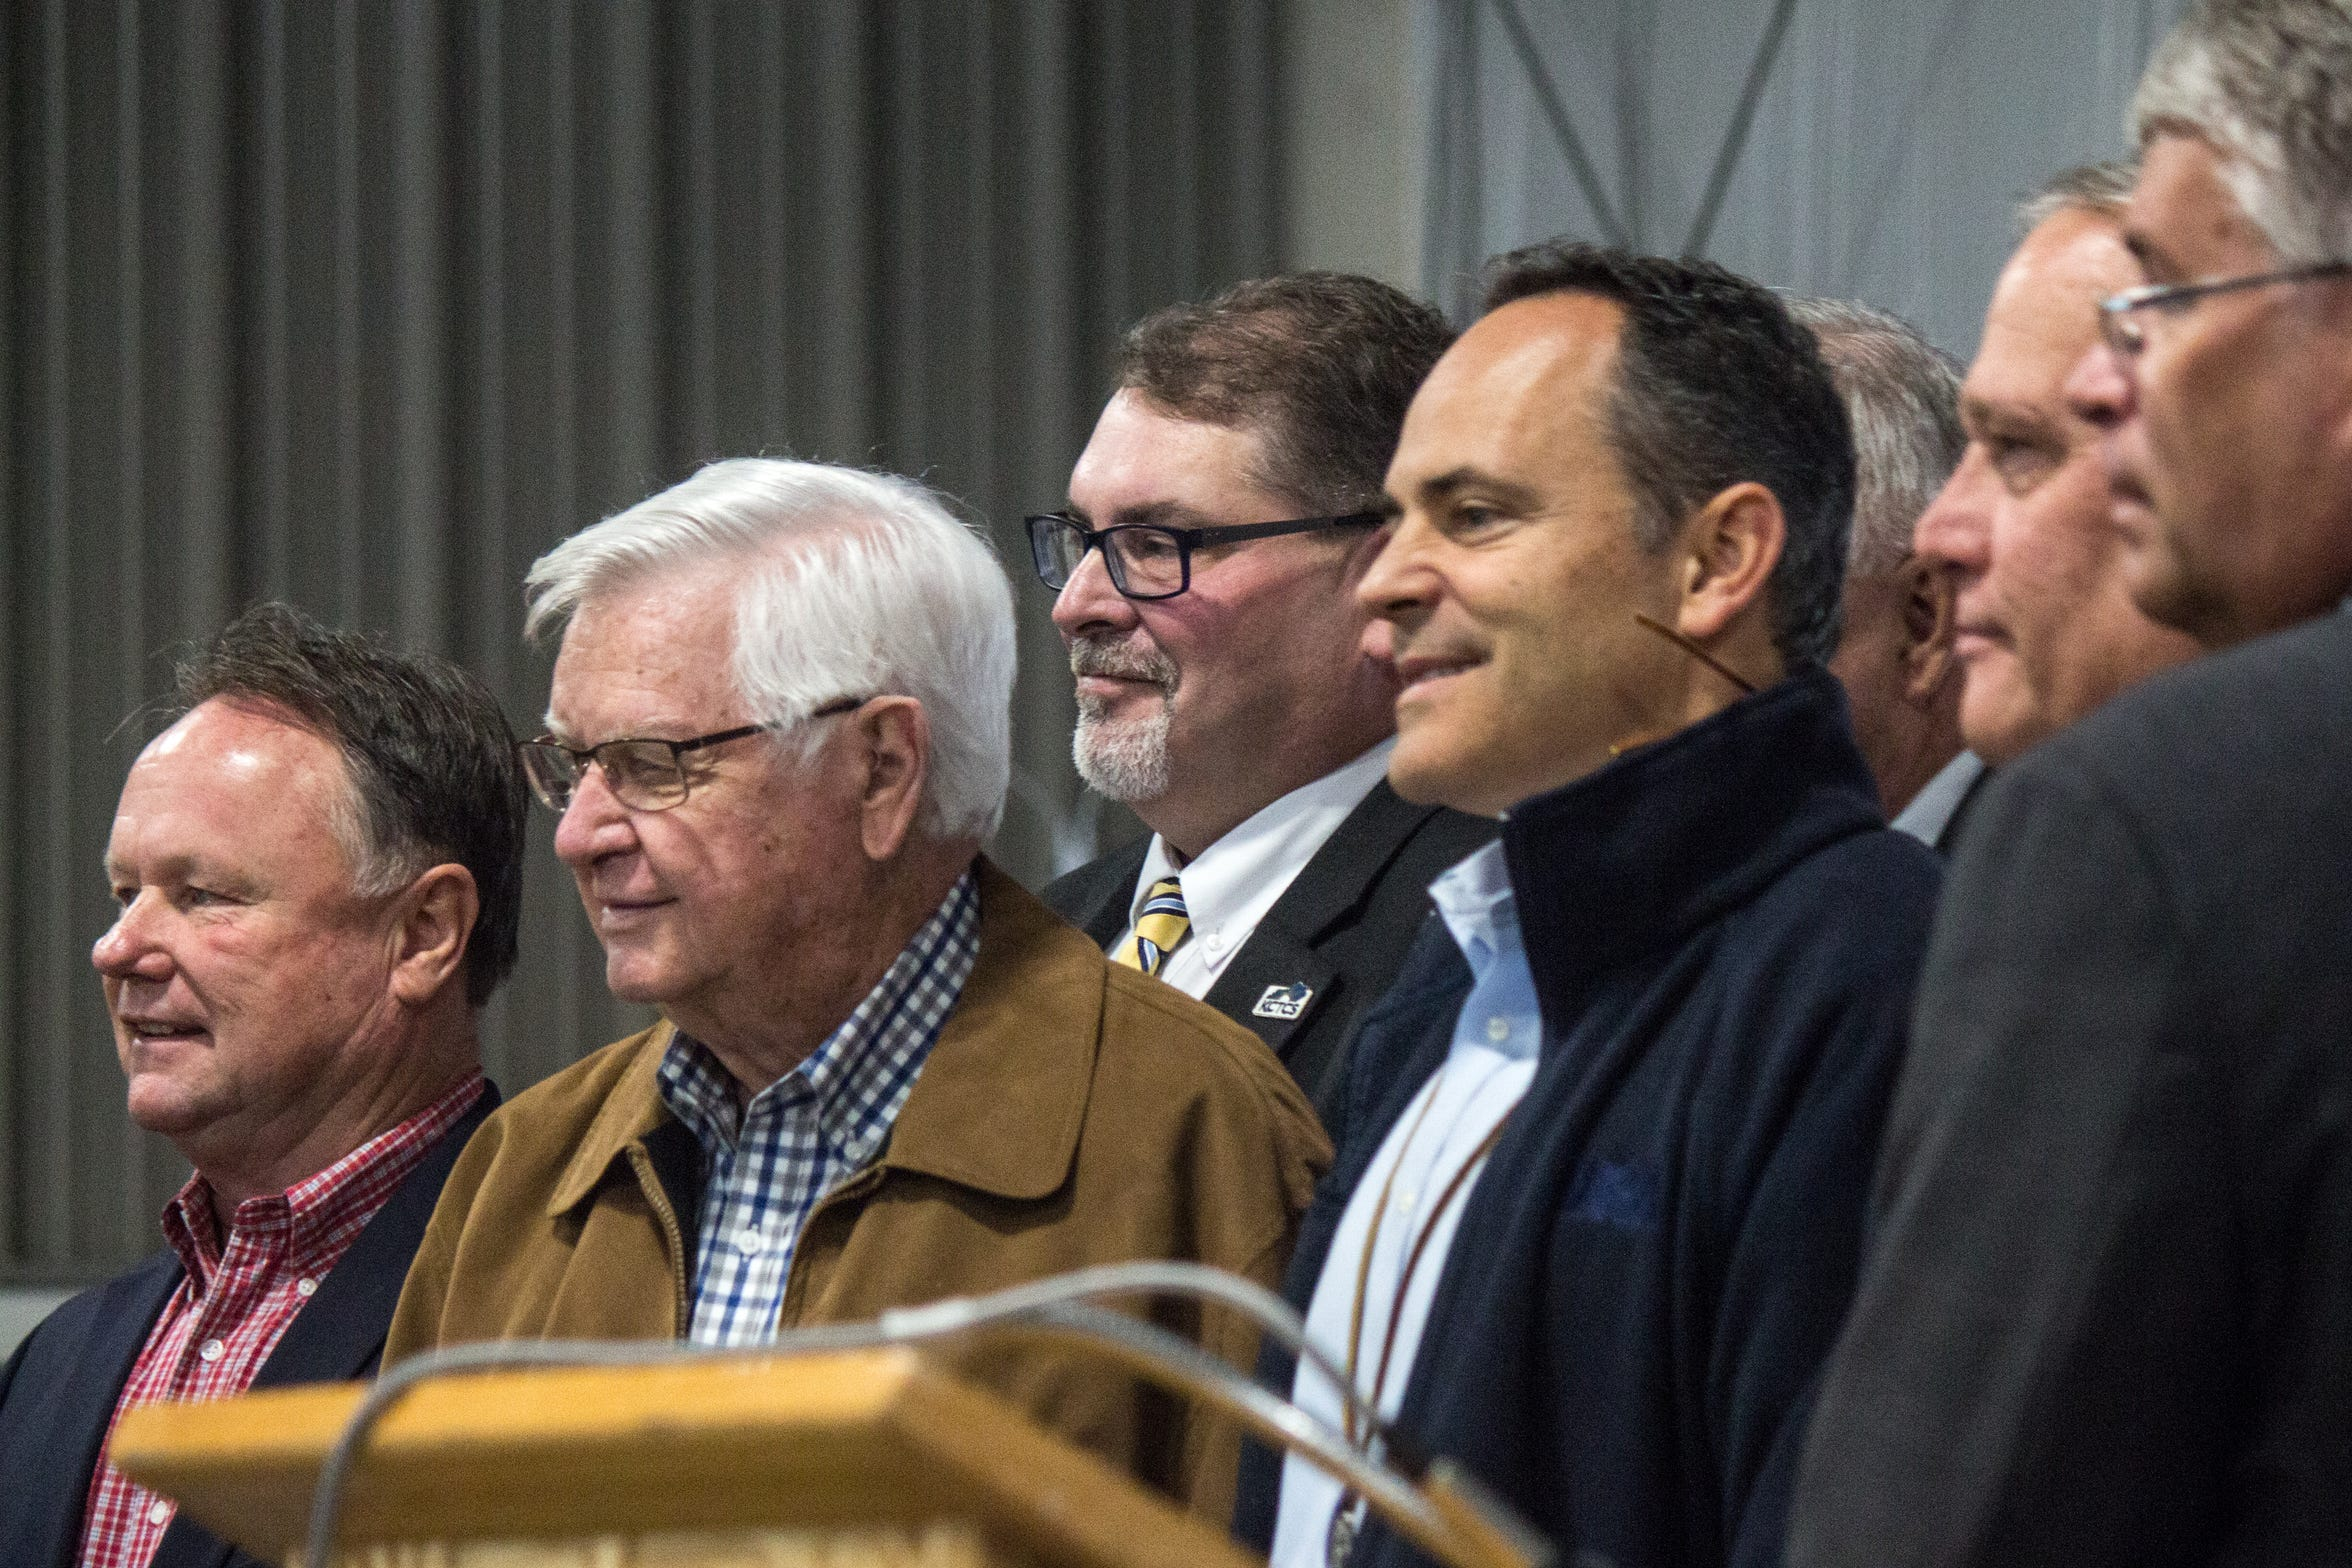 Gov. Matt Bevin (fourth from left) poses with Congressman Hal Rogers (second from left) in Barbourville. At a press conference less than a month before election day, the pair announced grant funding for a new workforce training center in Knox County.